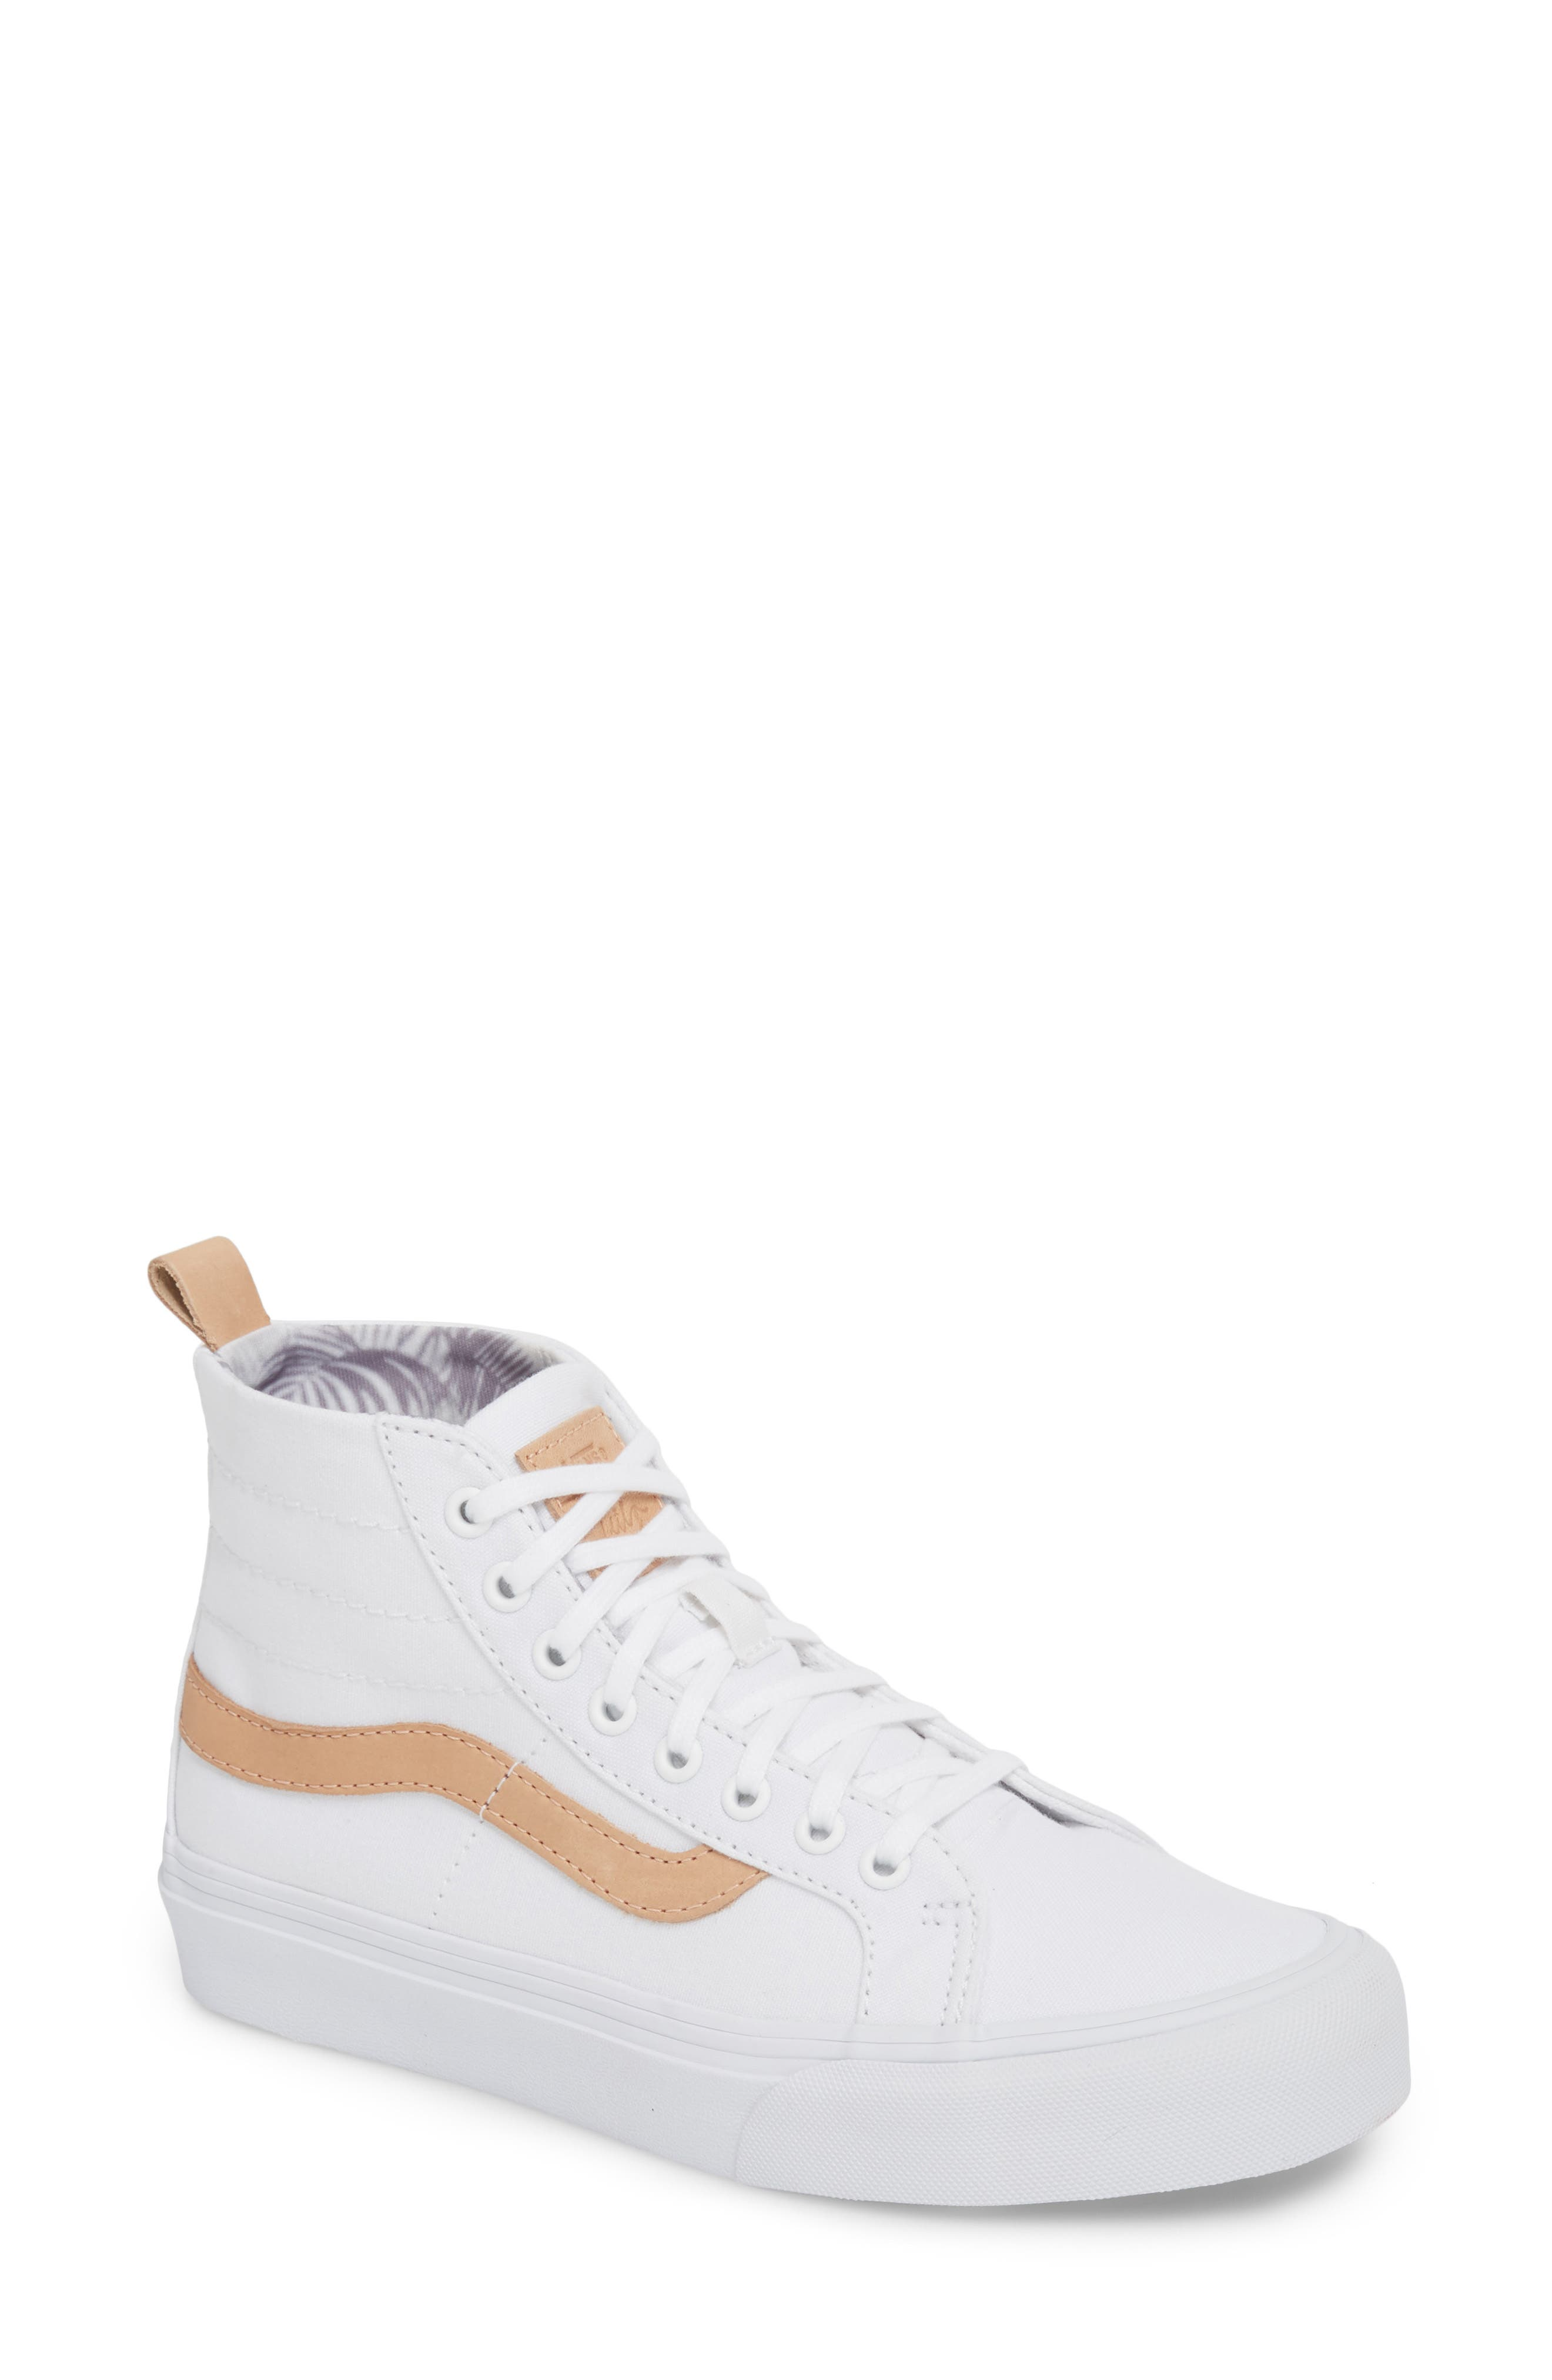 x Leila Hurst Sk8-Hi Decon SF Sneaker,                             Main thumbnail 1, color,                             100